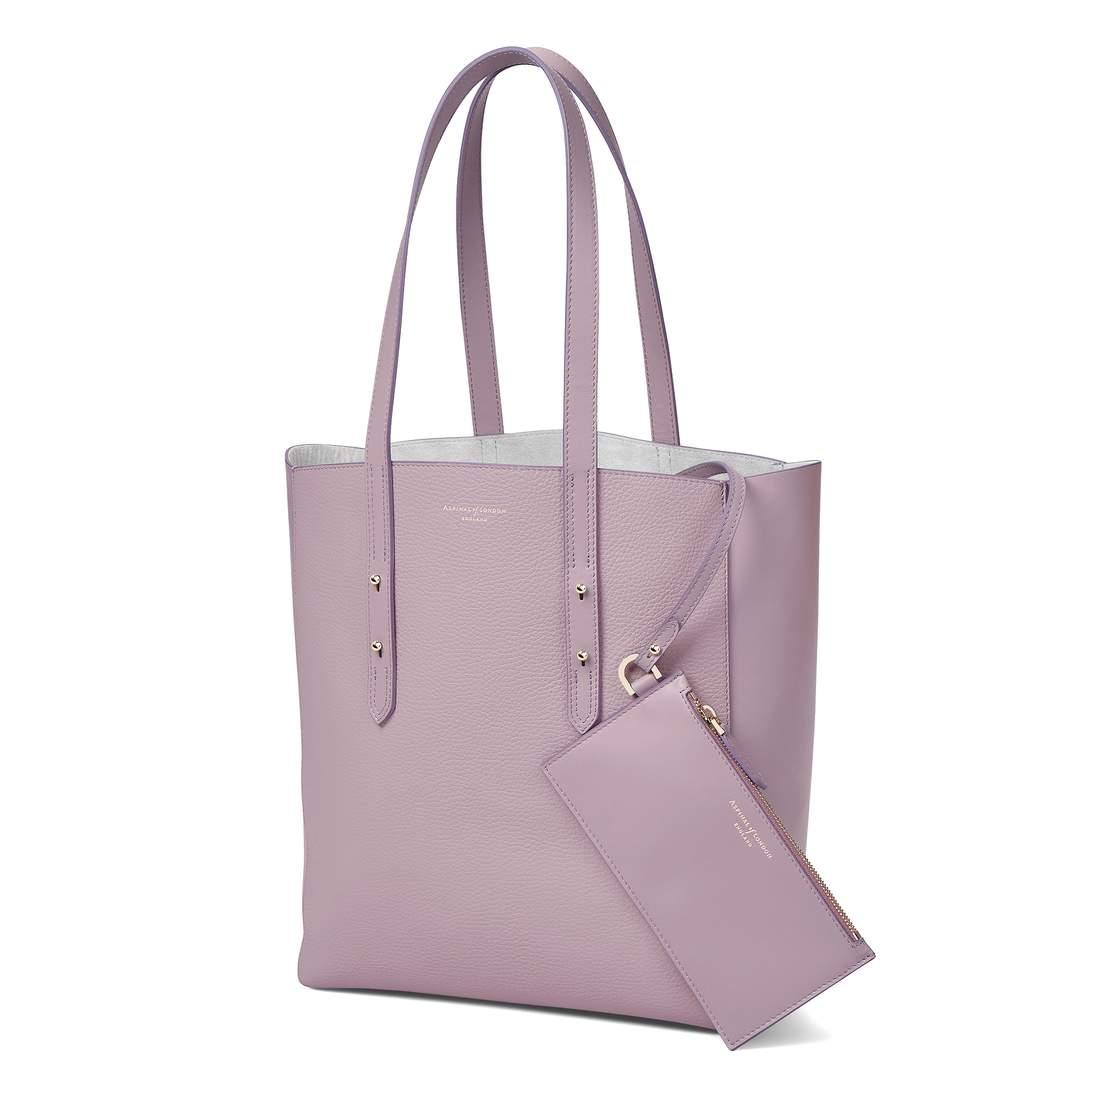 Aspinal of London Leather Essential Tote in Lilac (Purple)